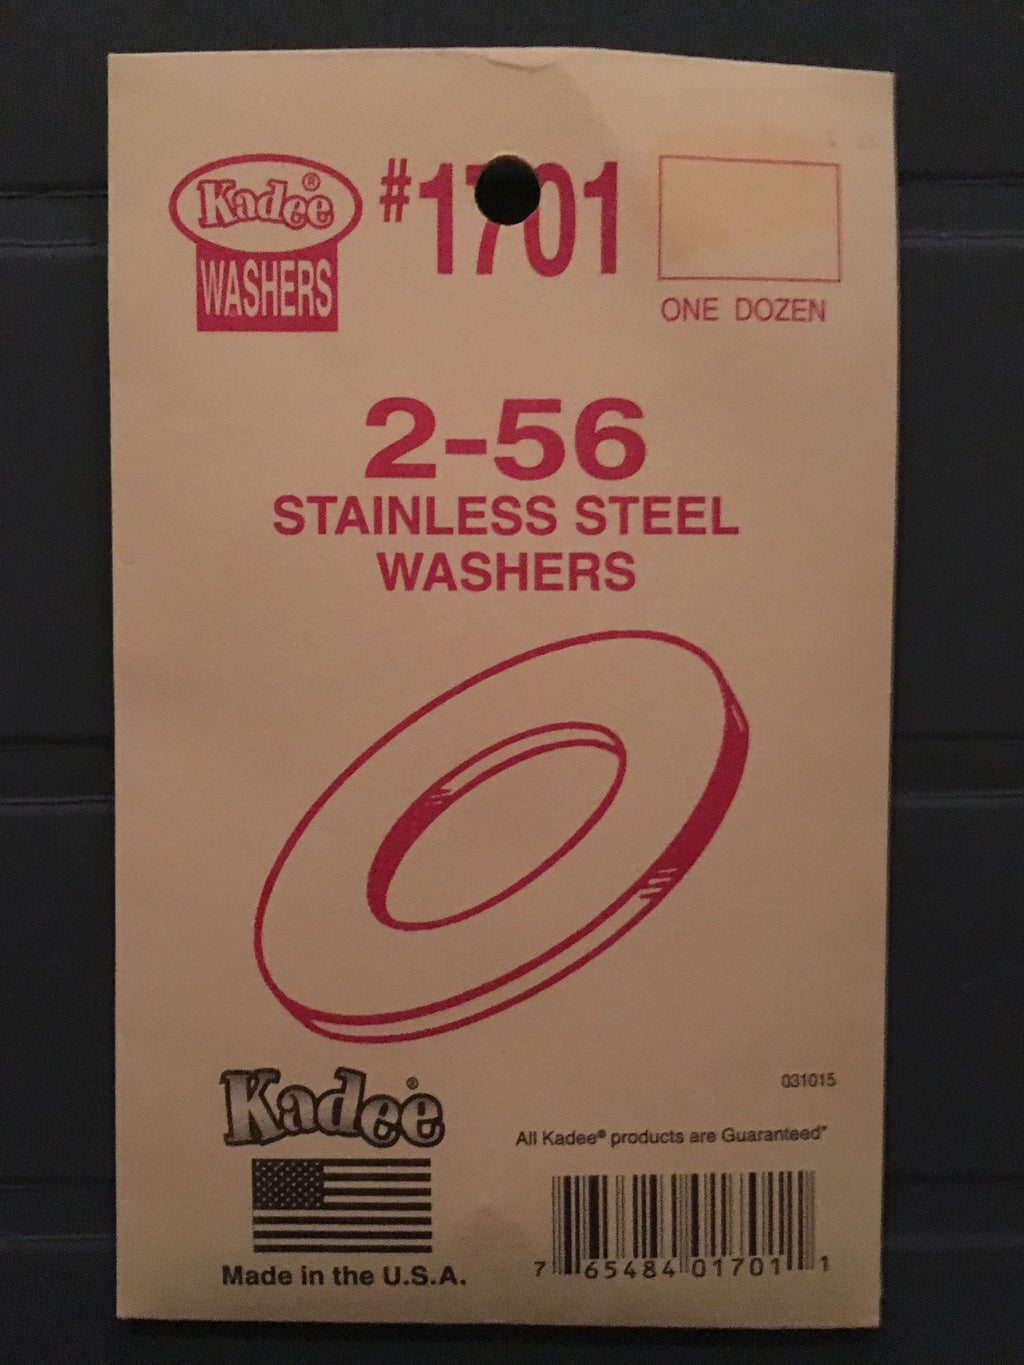 #1701 KADEE 2-56 Washers Stainless Steel (12)